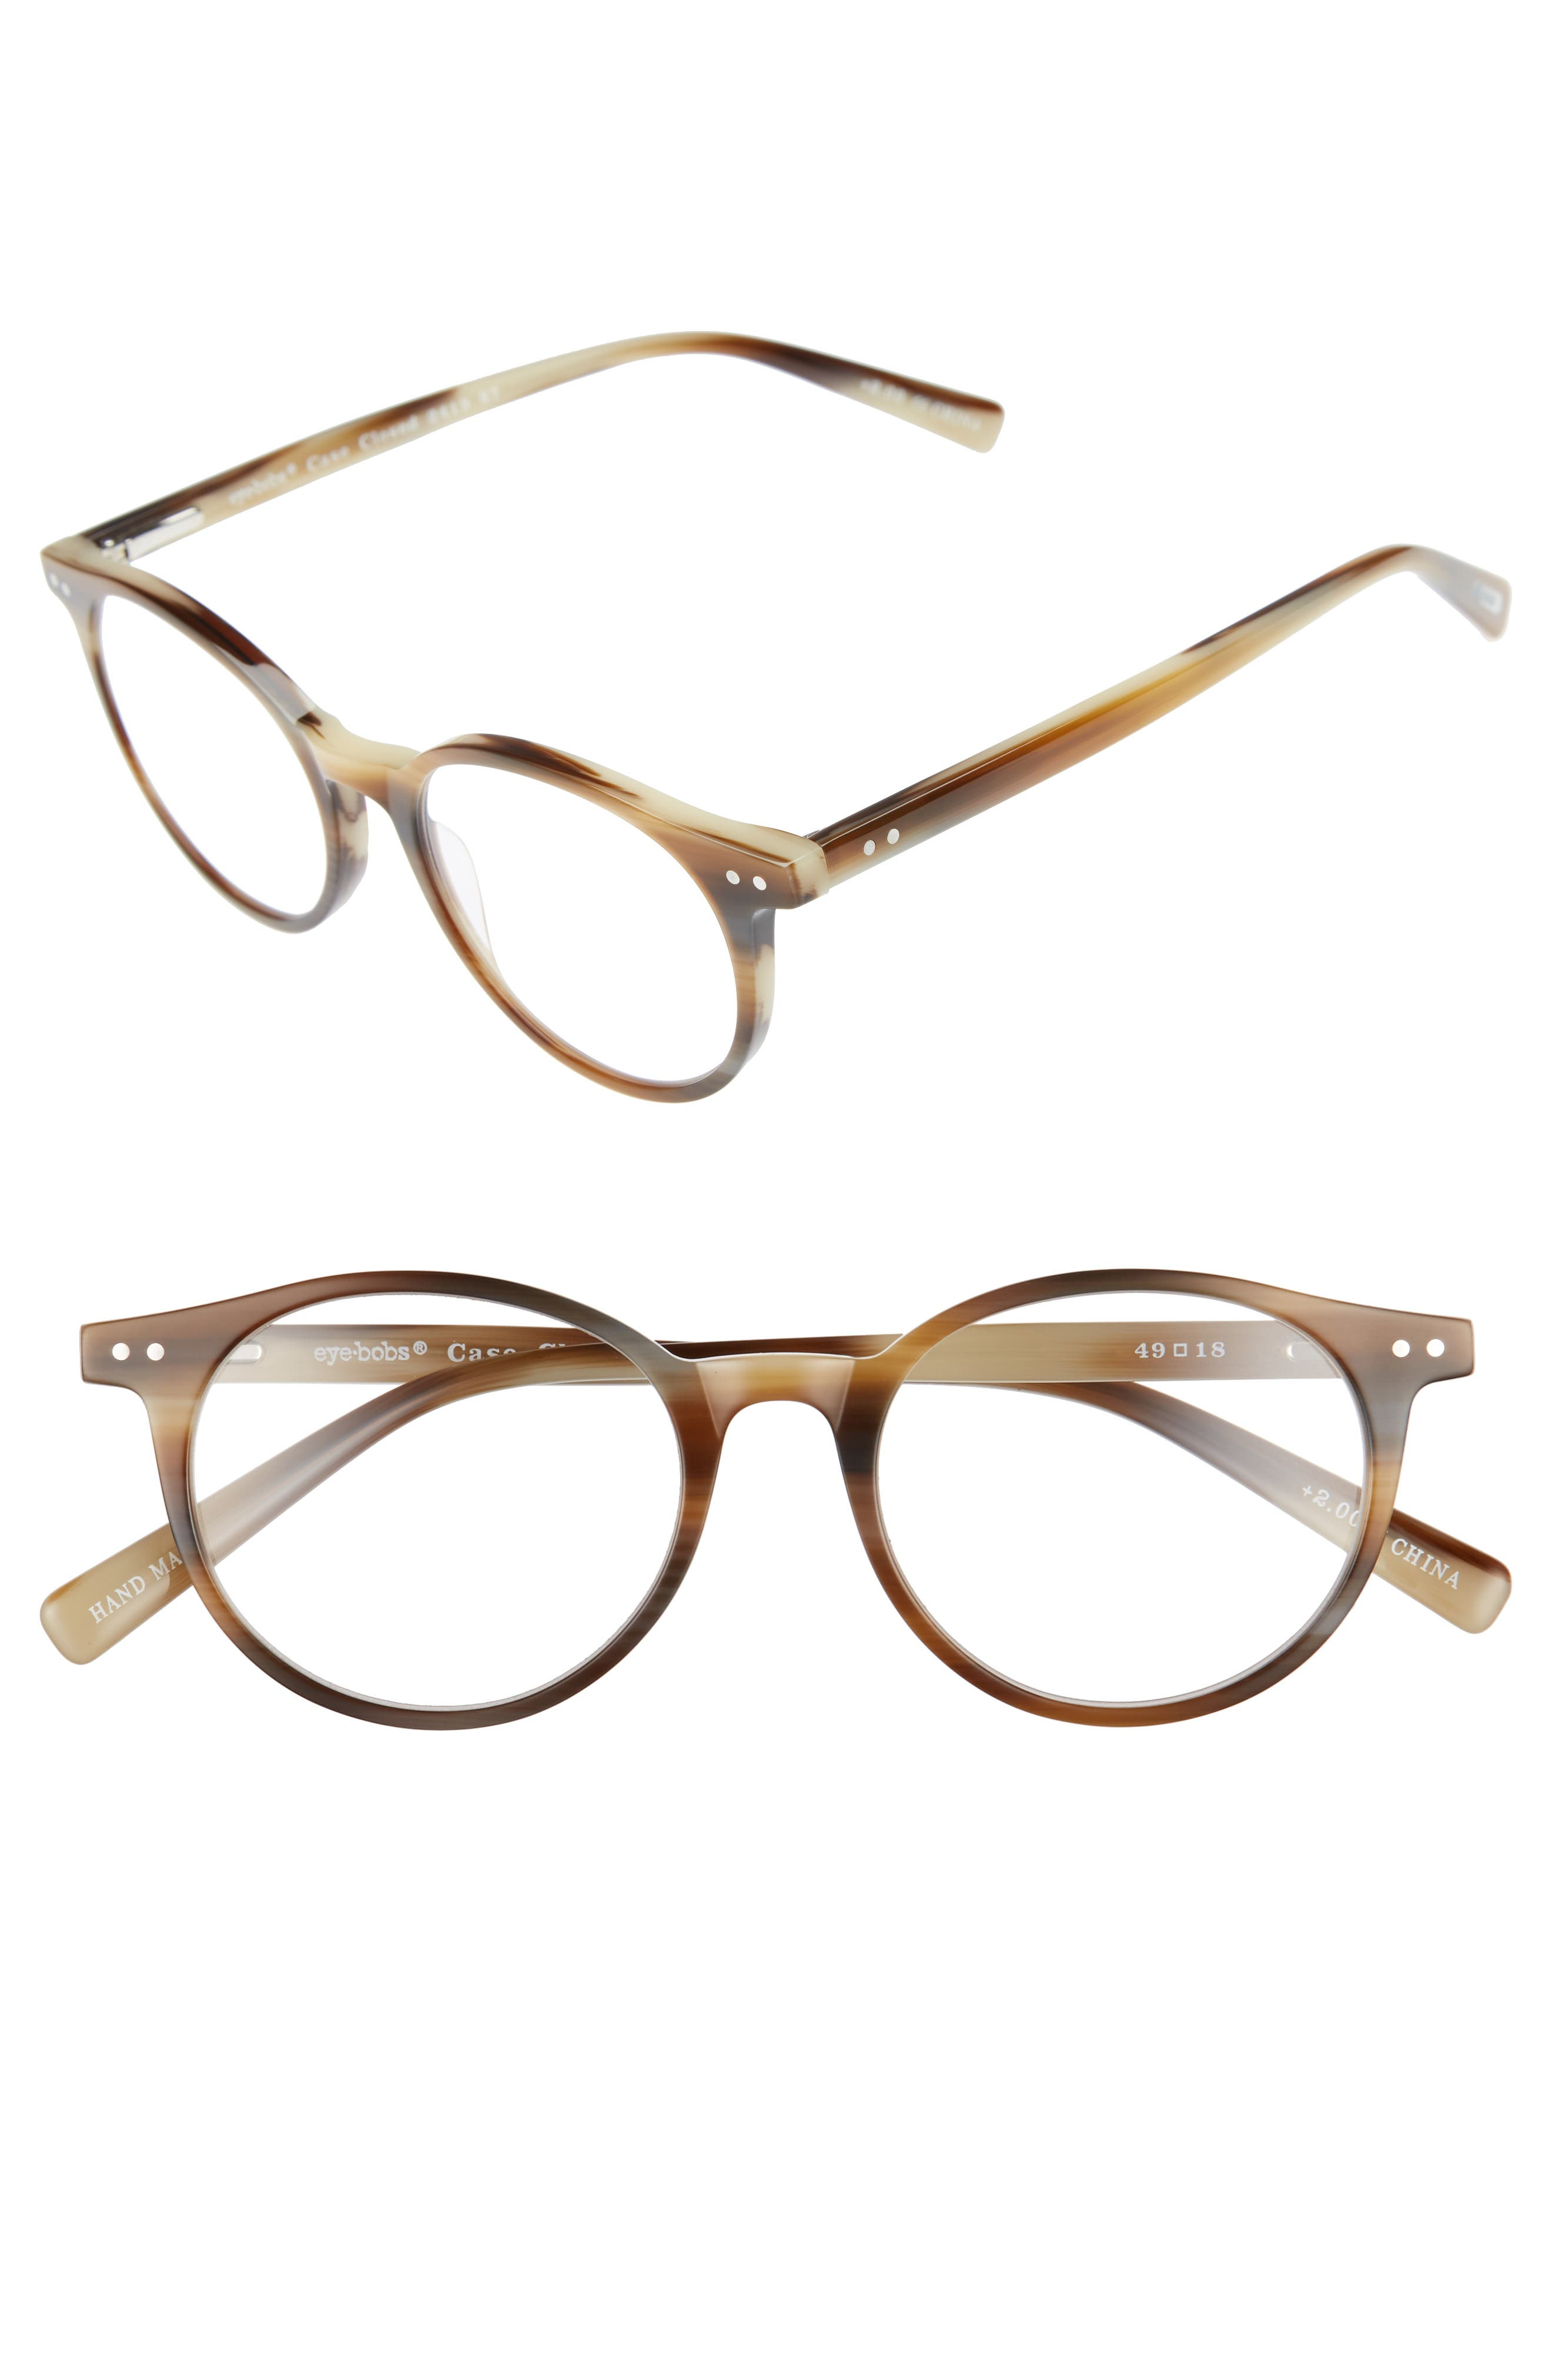 Case Closed 49mm Reading Glasses,                             Main thumbnail 1, color,                             Brown Horn